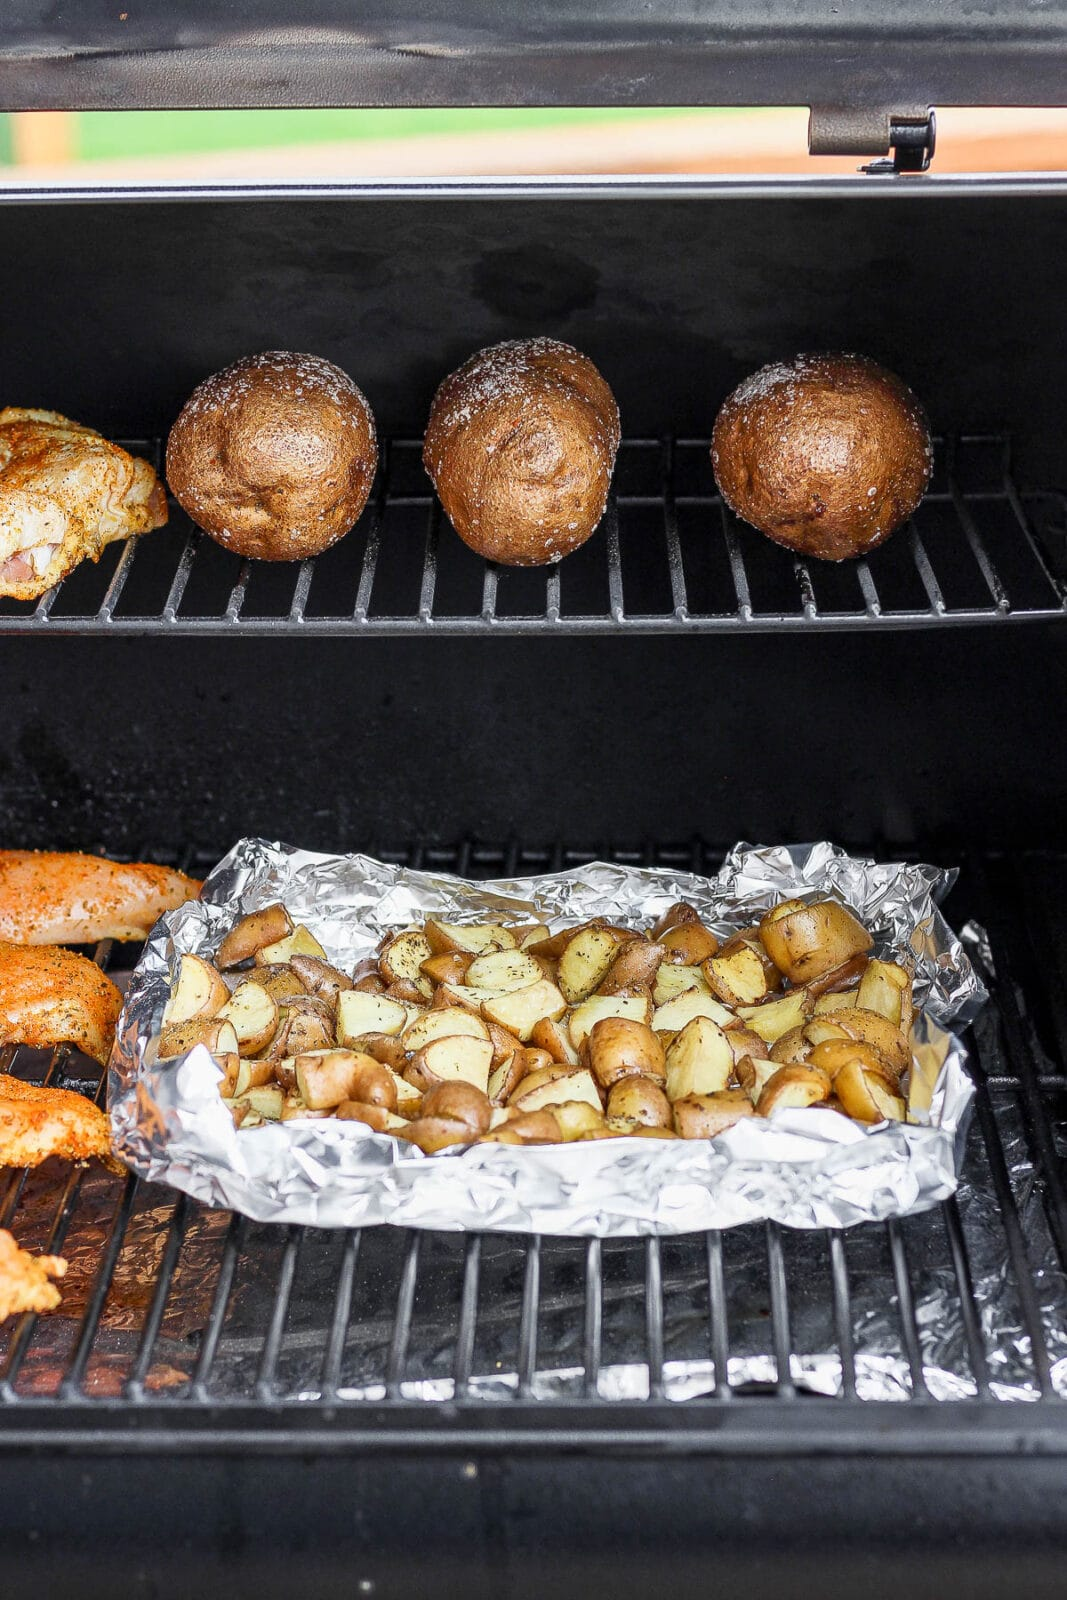 Cubed and whole potatoes on a smoker.